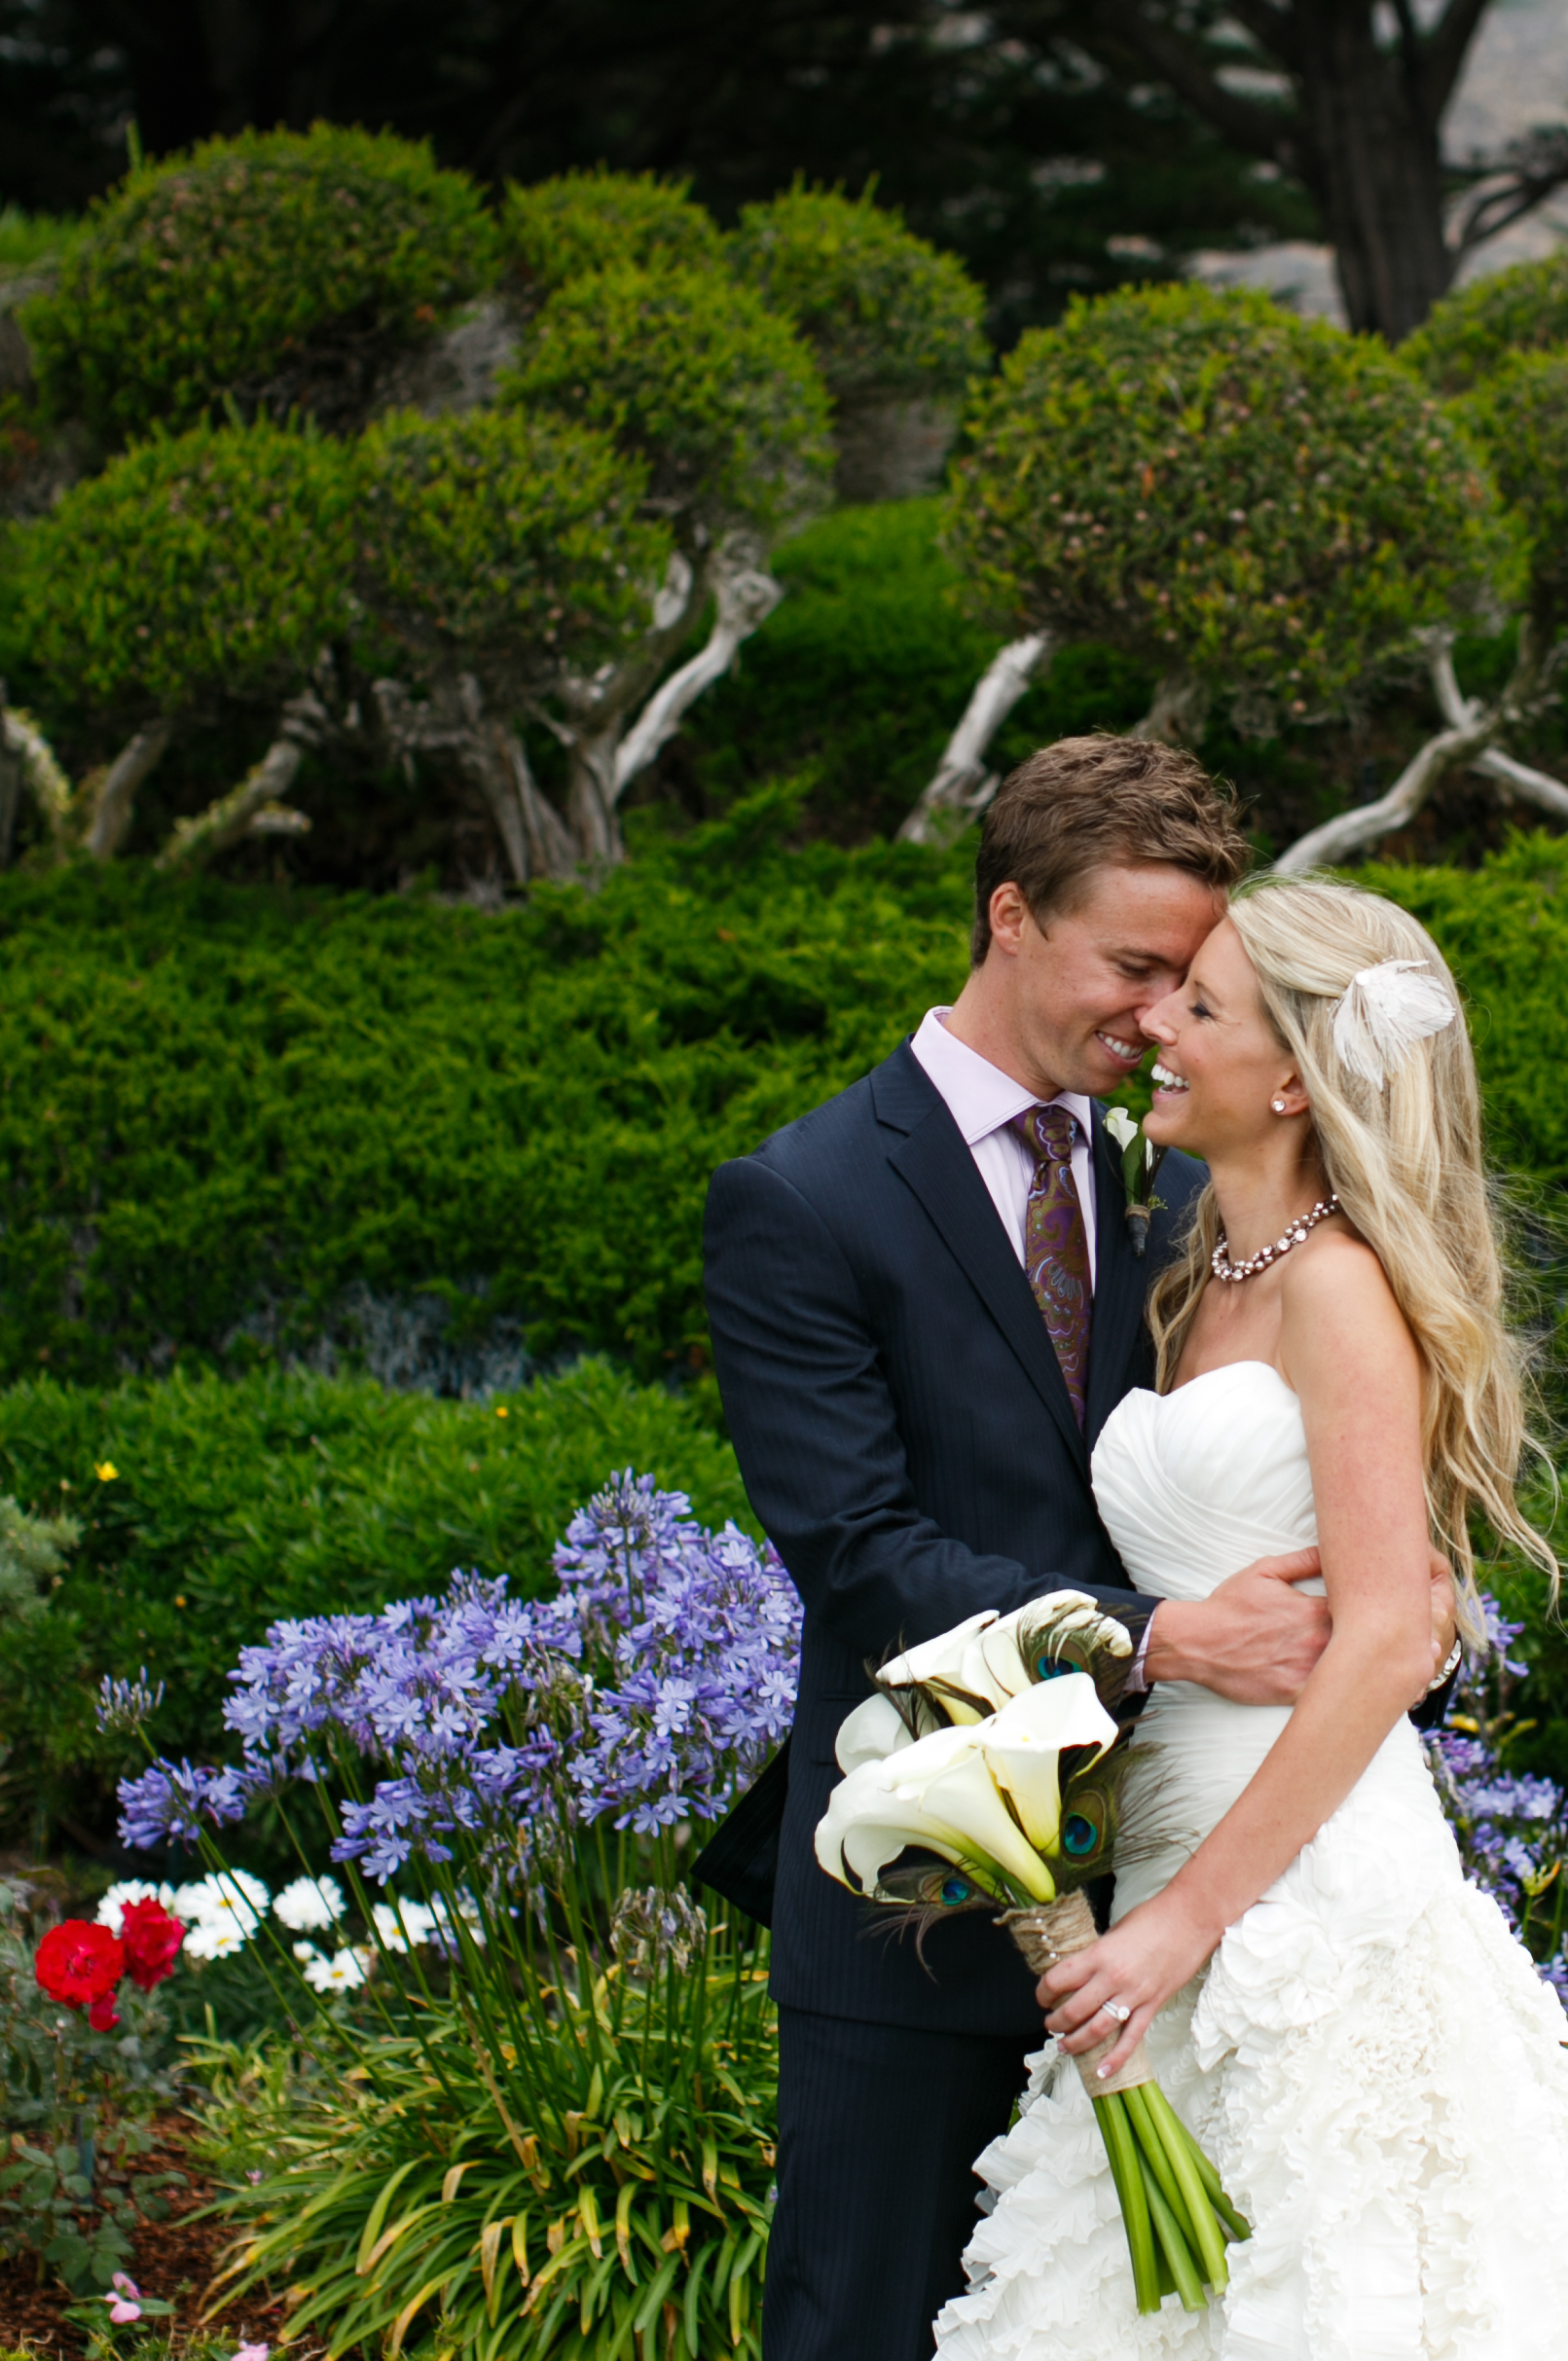 NYC-Wedding-Planner-Andrea-Freeman-Events-Malibu-Private-Estate-1.jpg